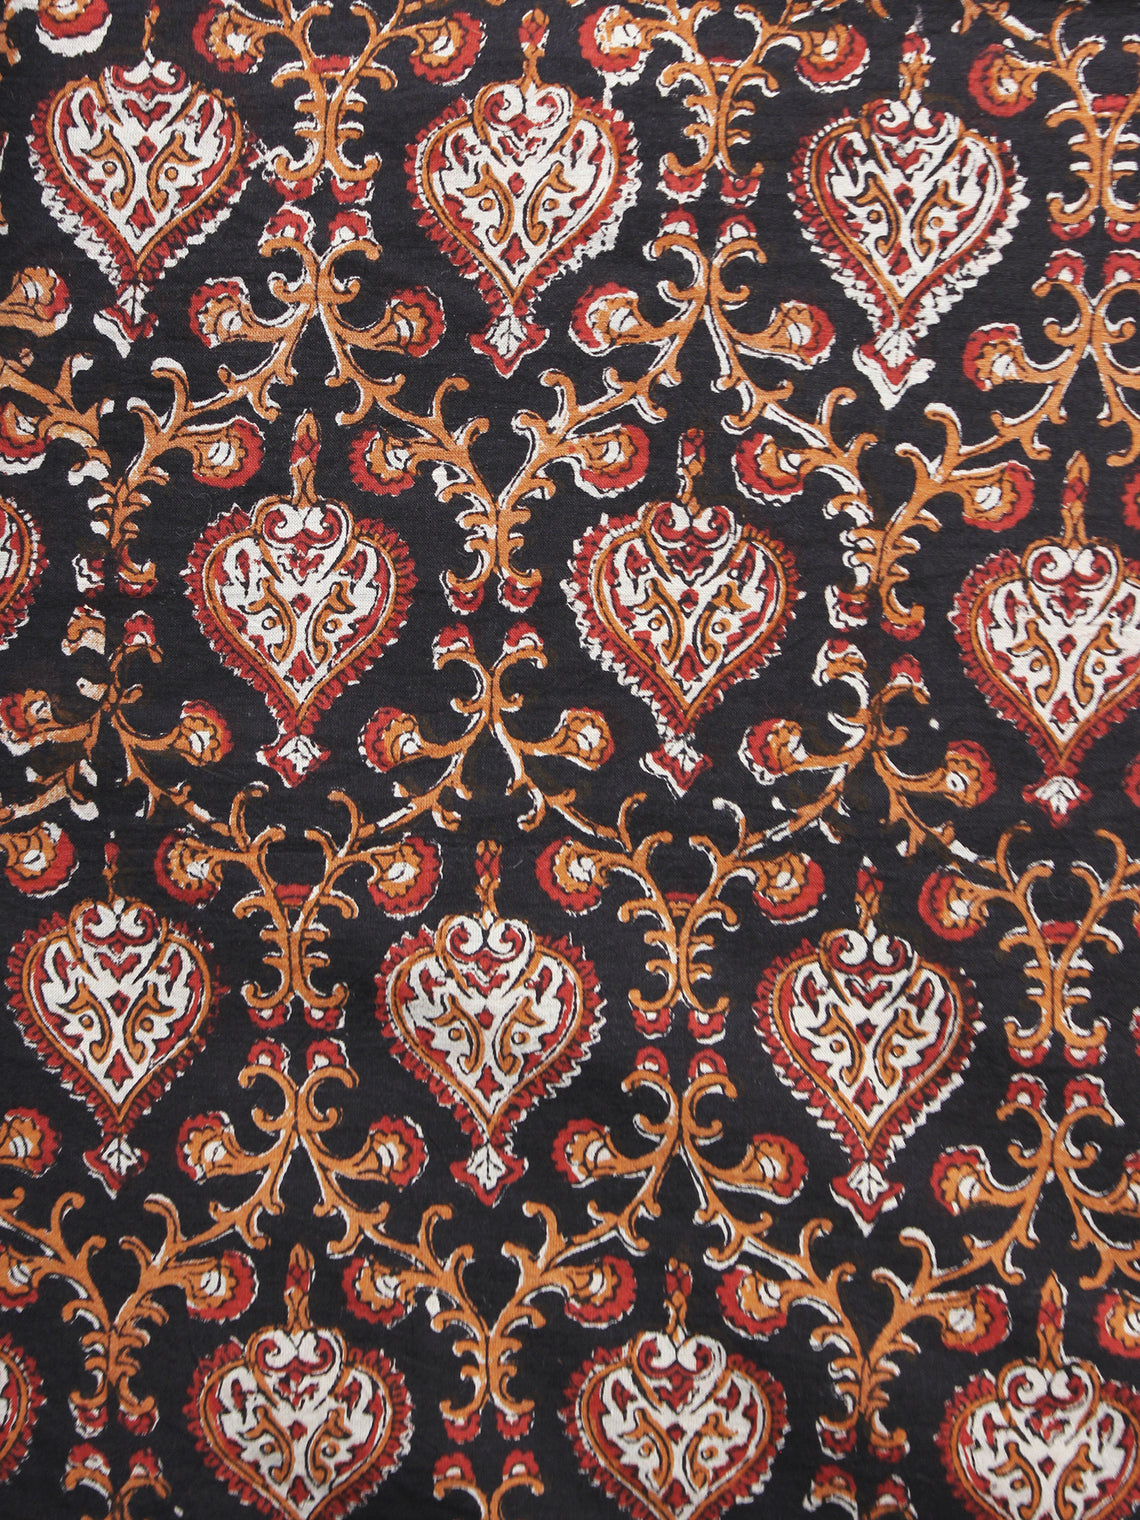 Black Maroon Brown White Hand Block Printed Cotton Fabric Per Meter - F001F892